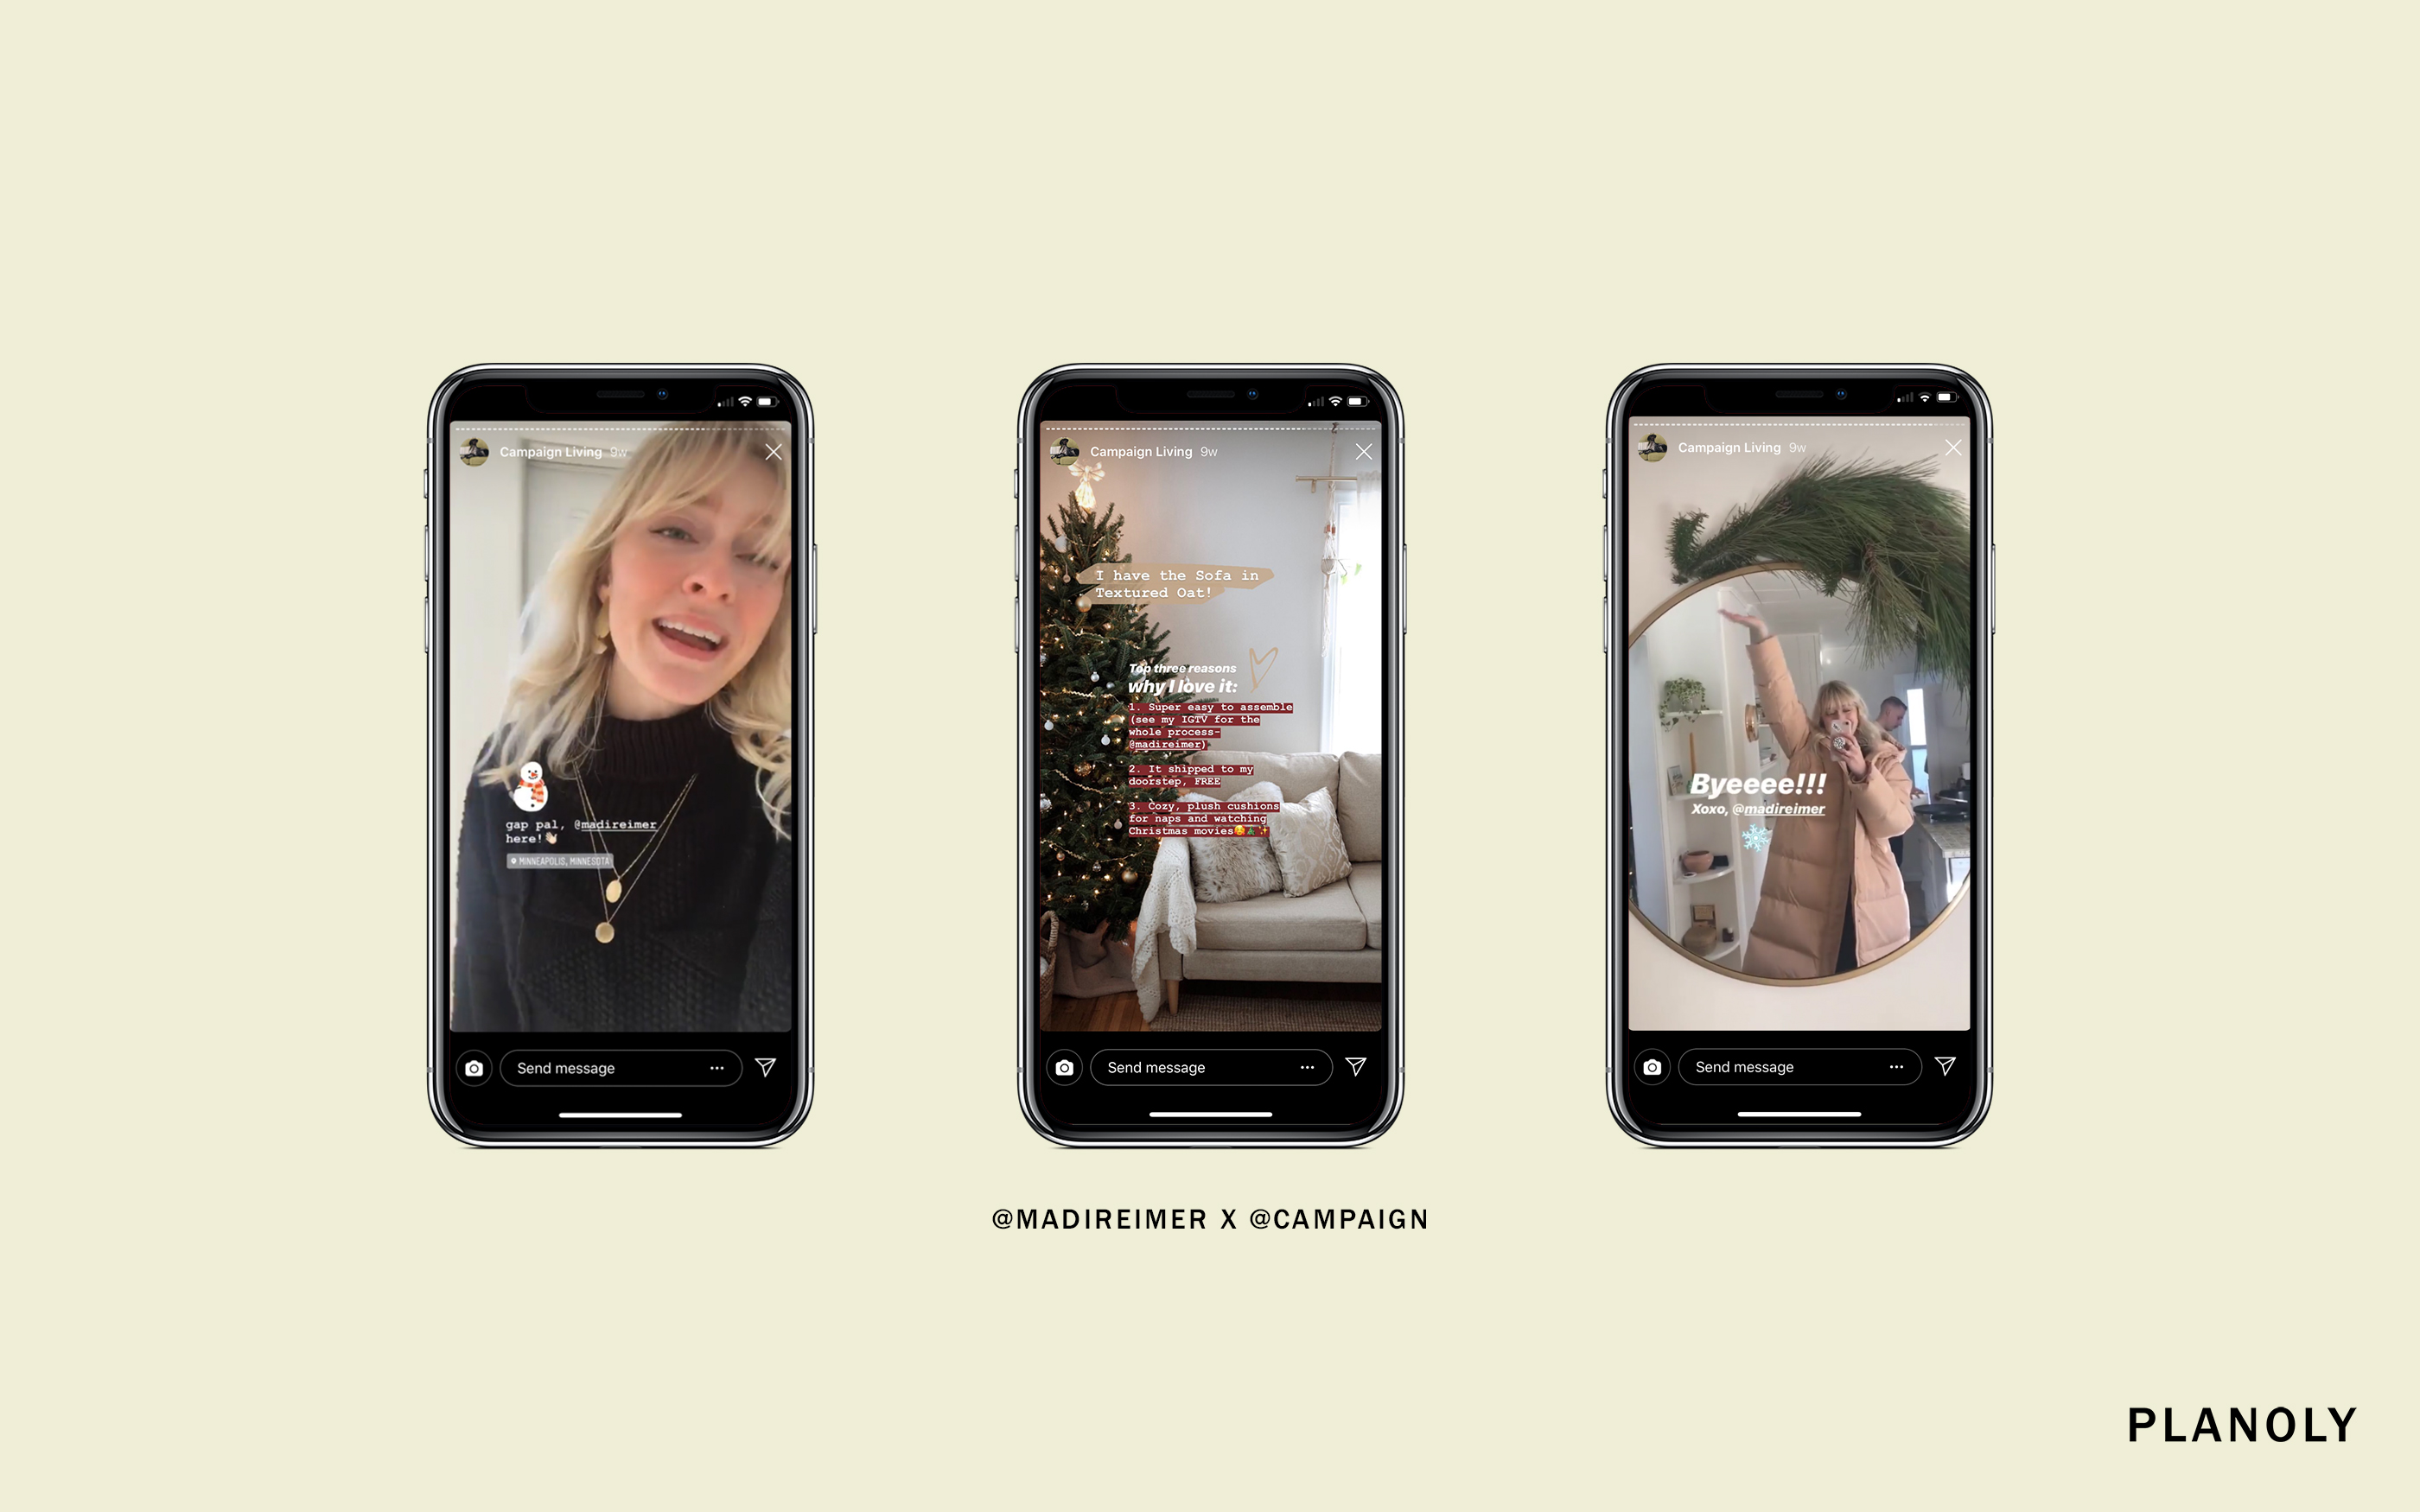 How to Plan Your Instagram Stories Takeover